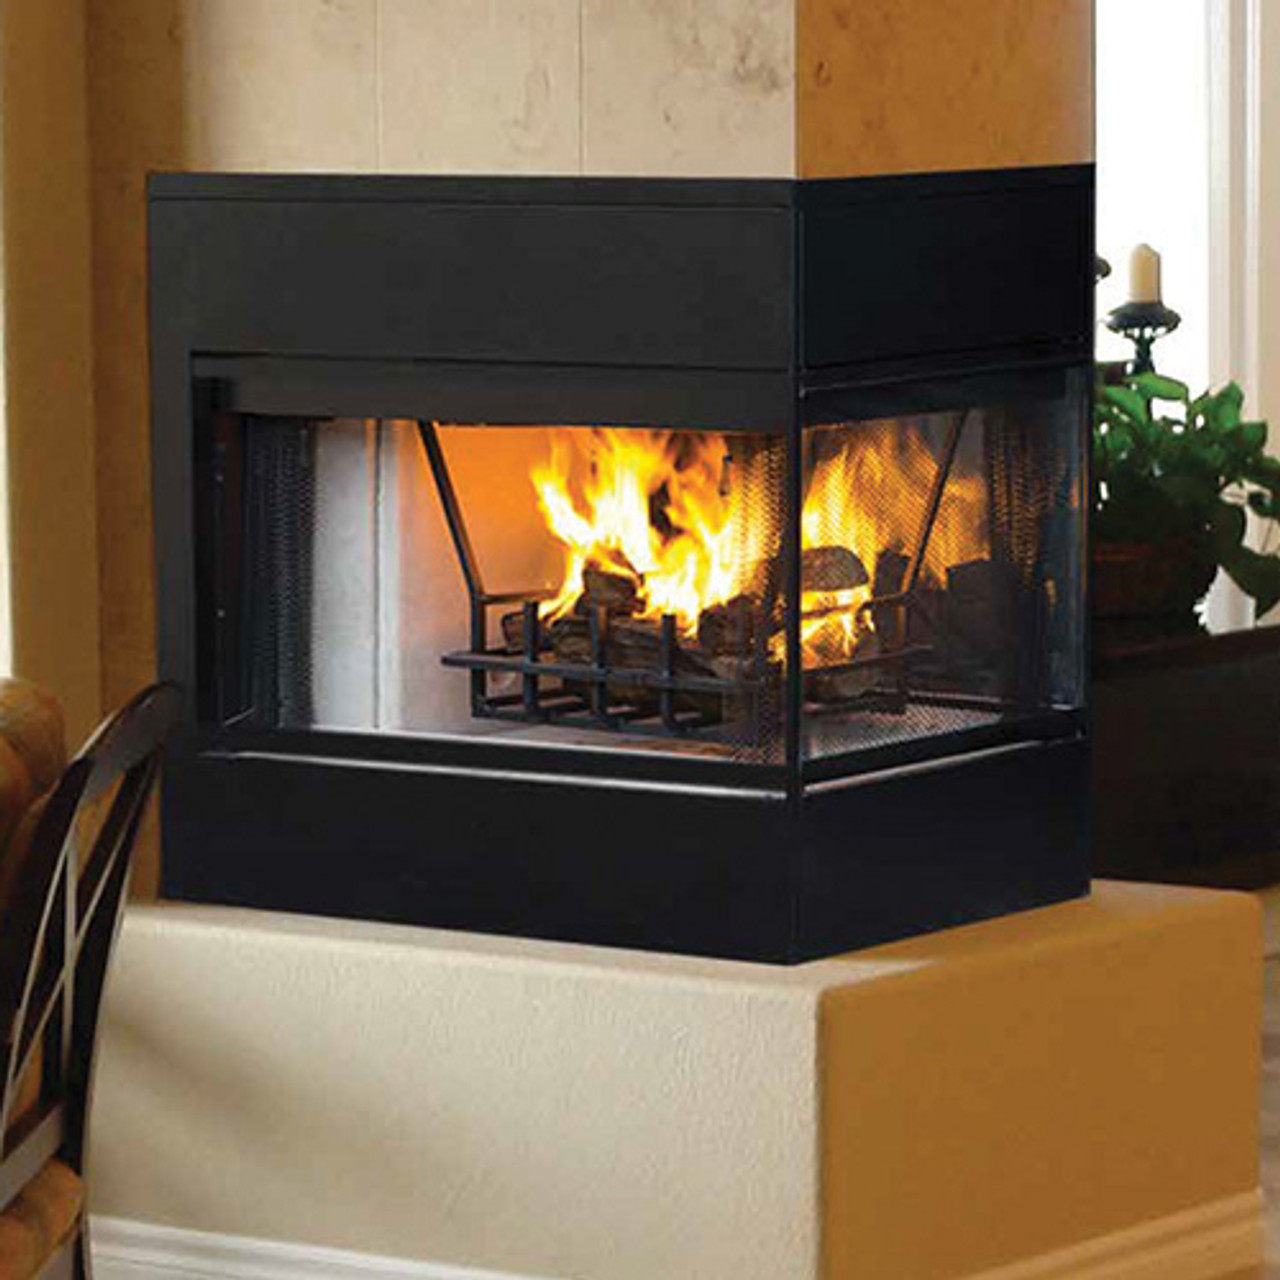 Peachy Superior Wrt 4000 See Through 3 Sided Wood Burning Fireplaces Download Free Architecture Designs Rallybritishbridgeorg